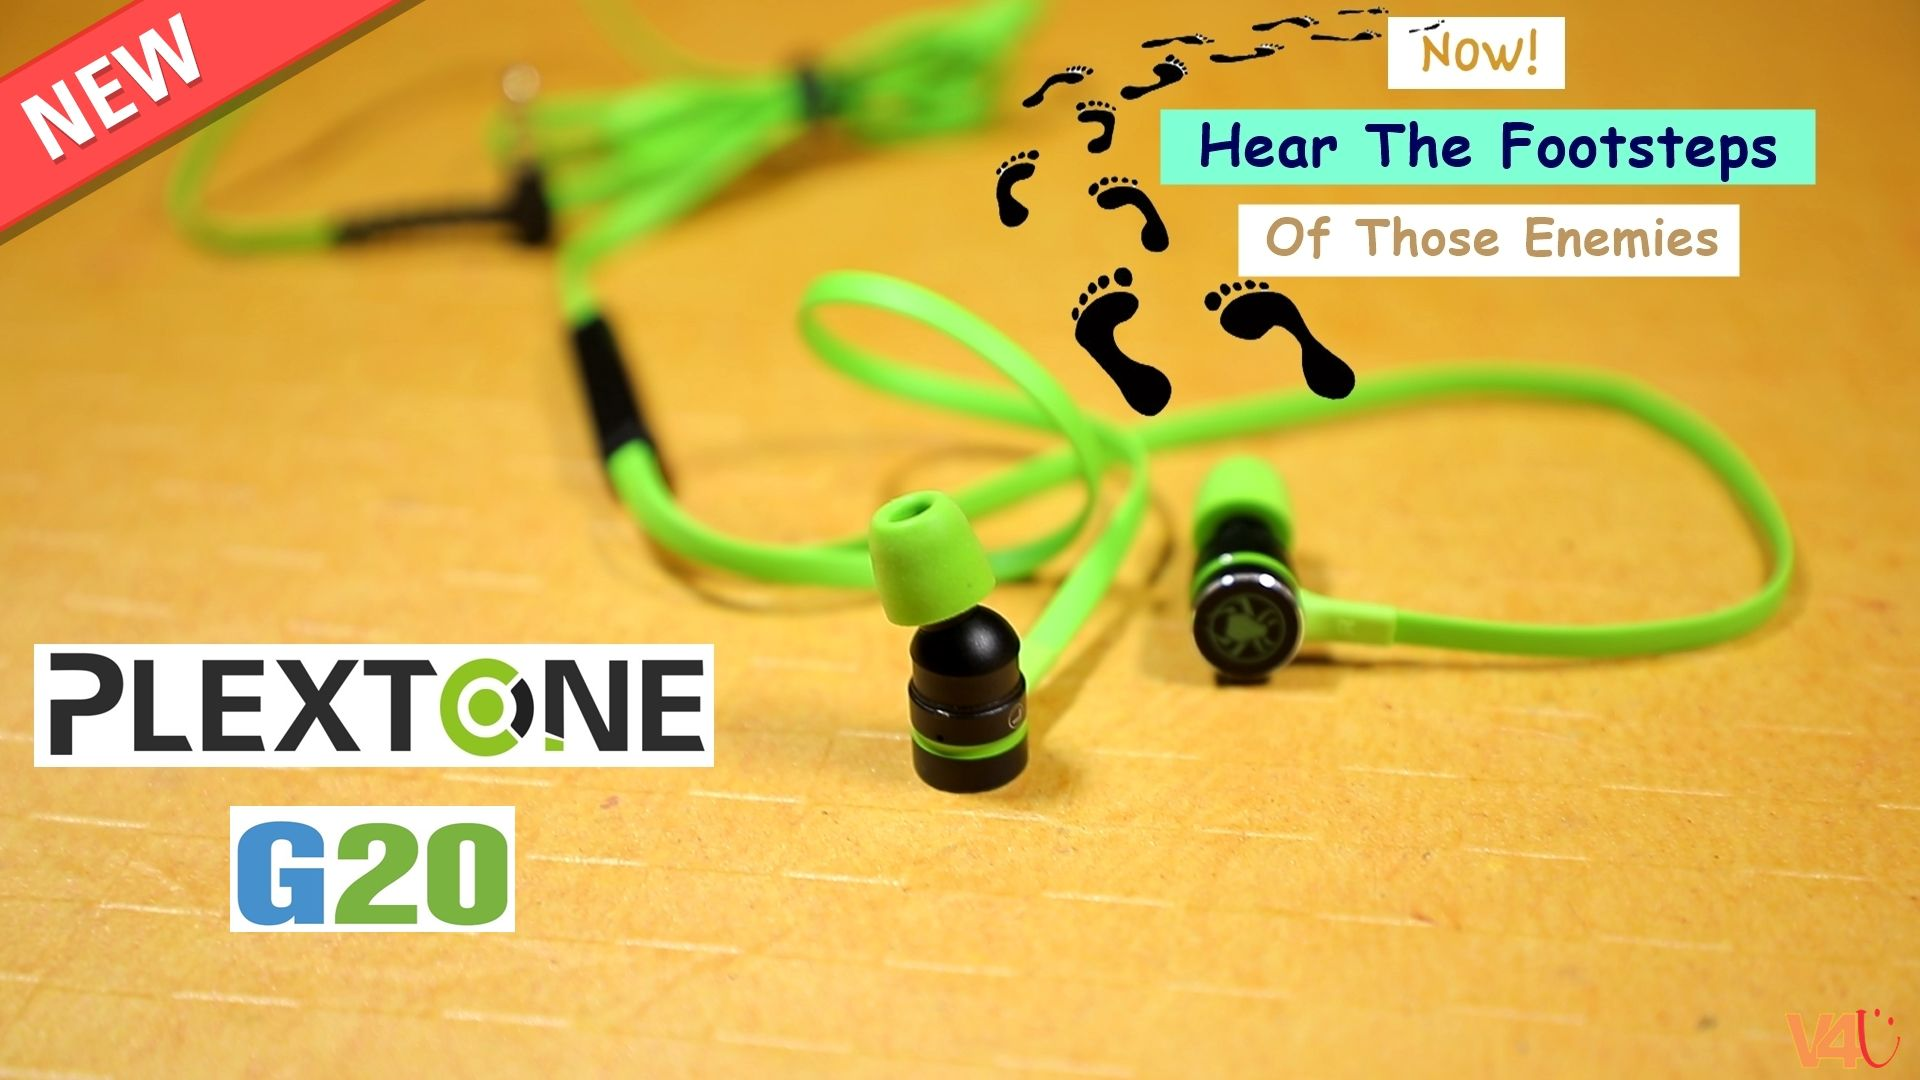 Best Earphones For Pubg Mobile Under 1000 12 Plextone G20 Hands On Unboxing And Review In 4k Unboxing Earphone Phablet